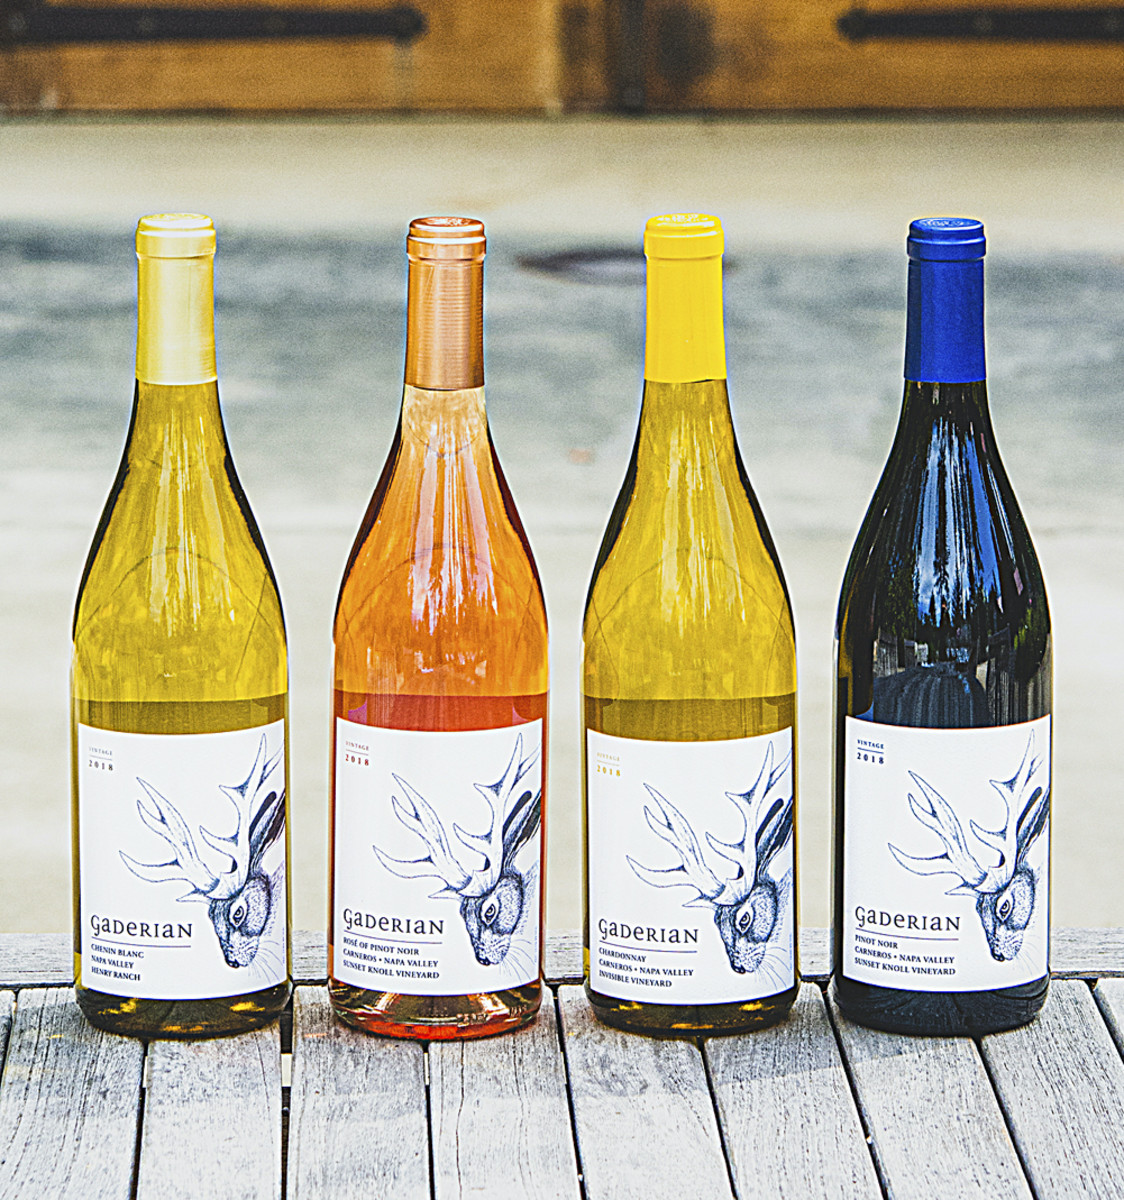 BOTTLE UP Gaderian is a two-person business, so Coughlin has a hand in virtually every aspect, including label design.